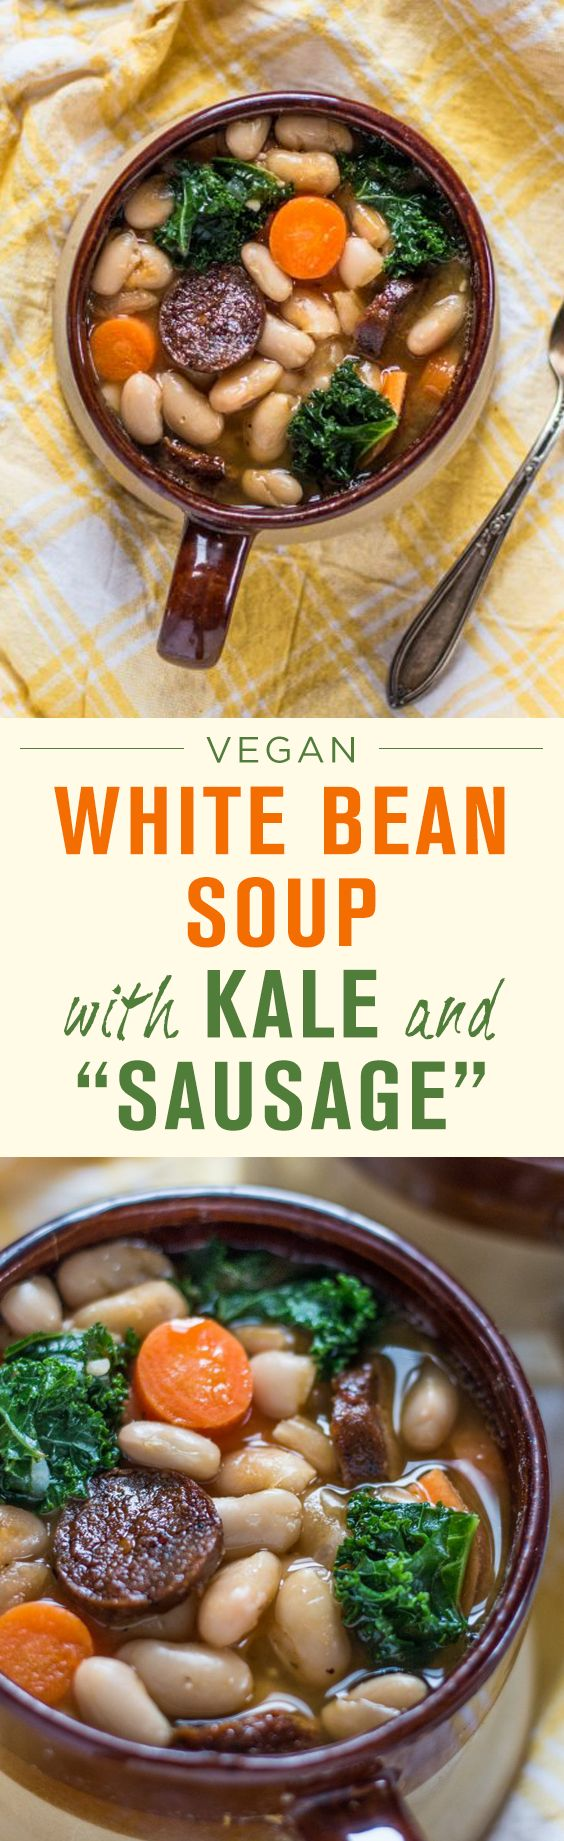 """Delicious vegan white bean soup with kale and Tofurky """"sausage."""""""